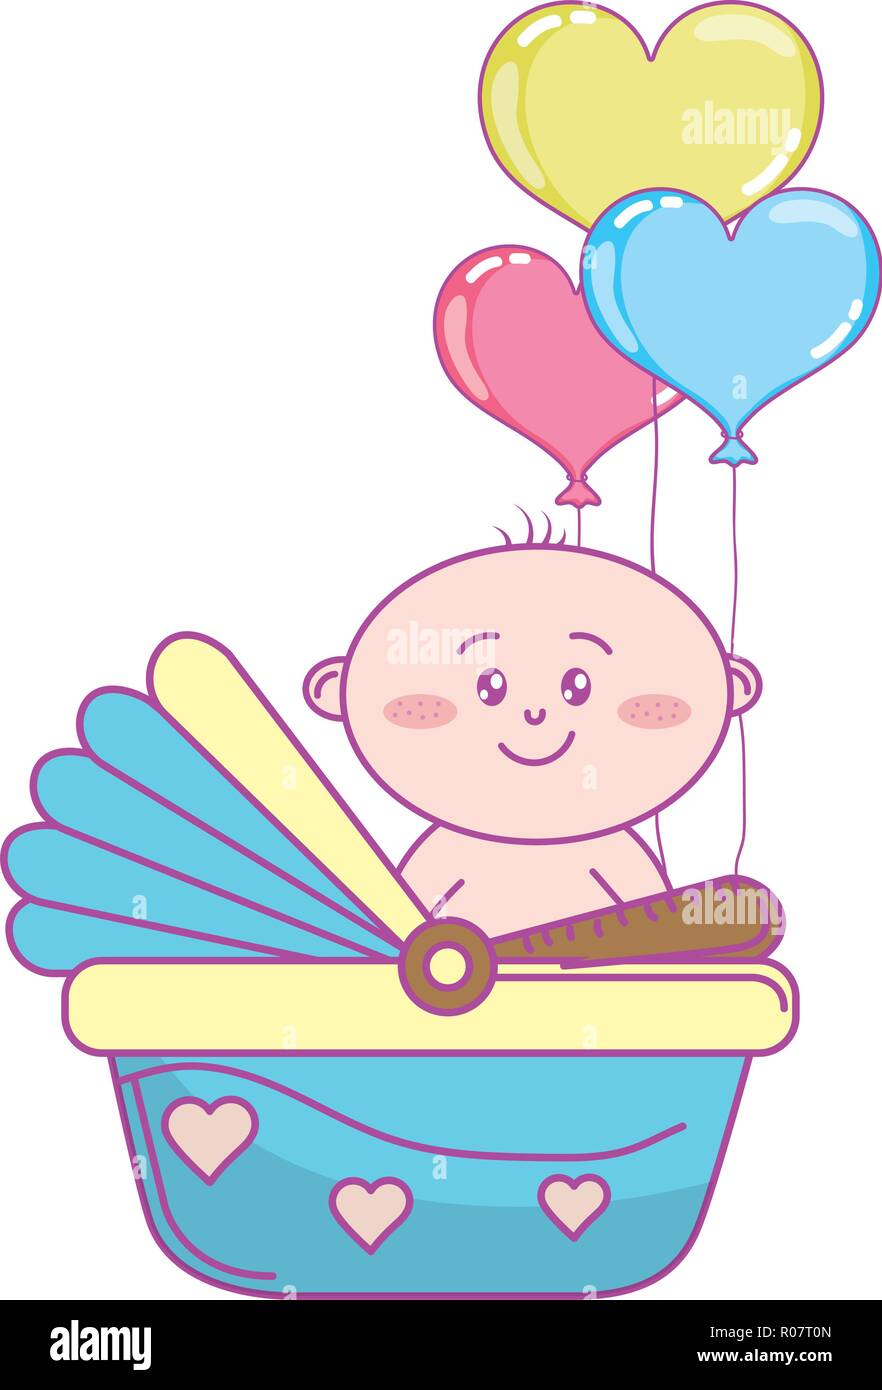 Baby Shower Cartoon Stock Vector Image Art Alamy